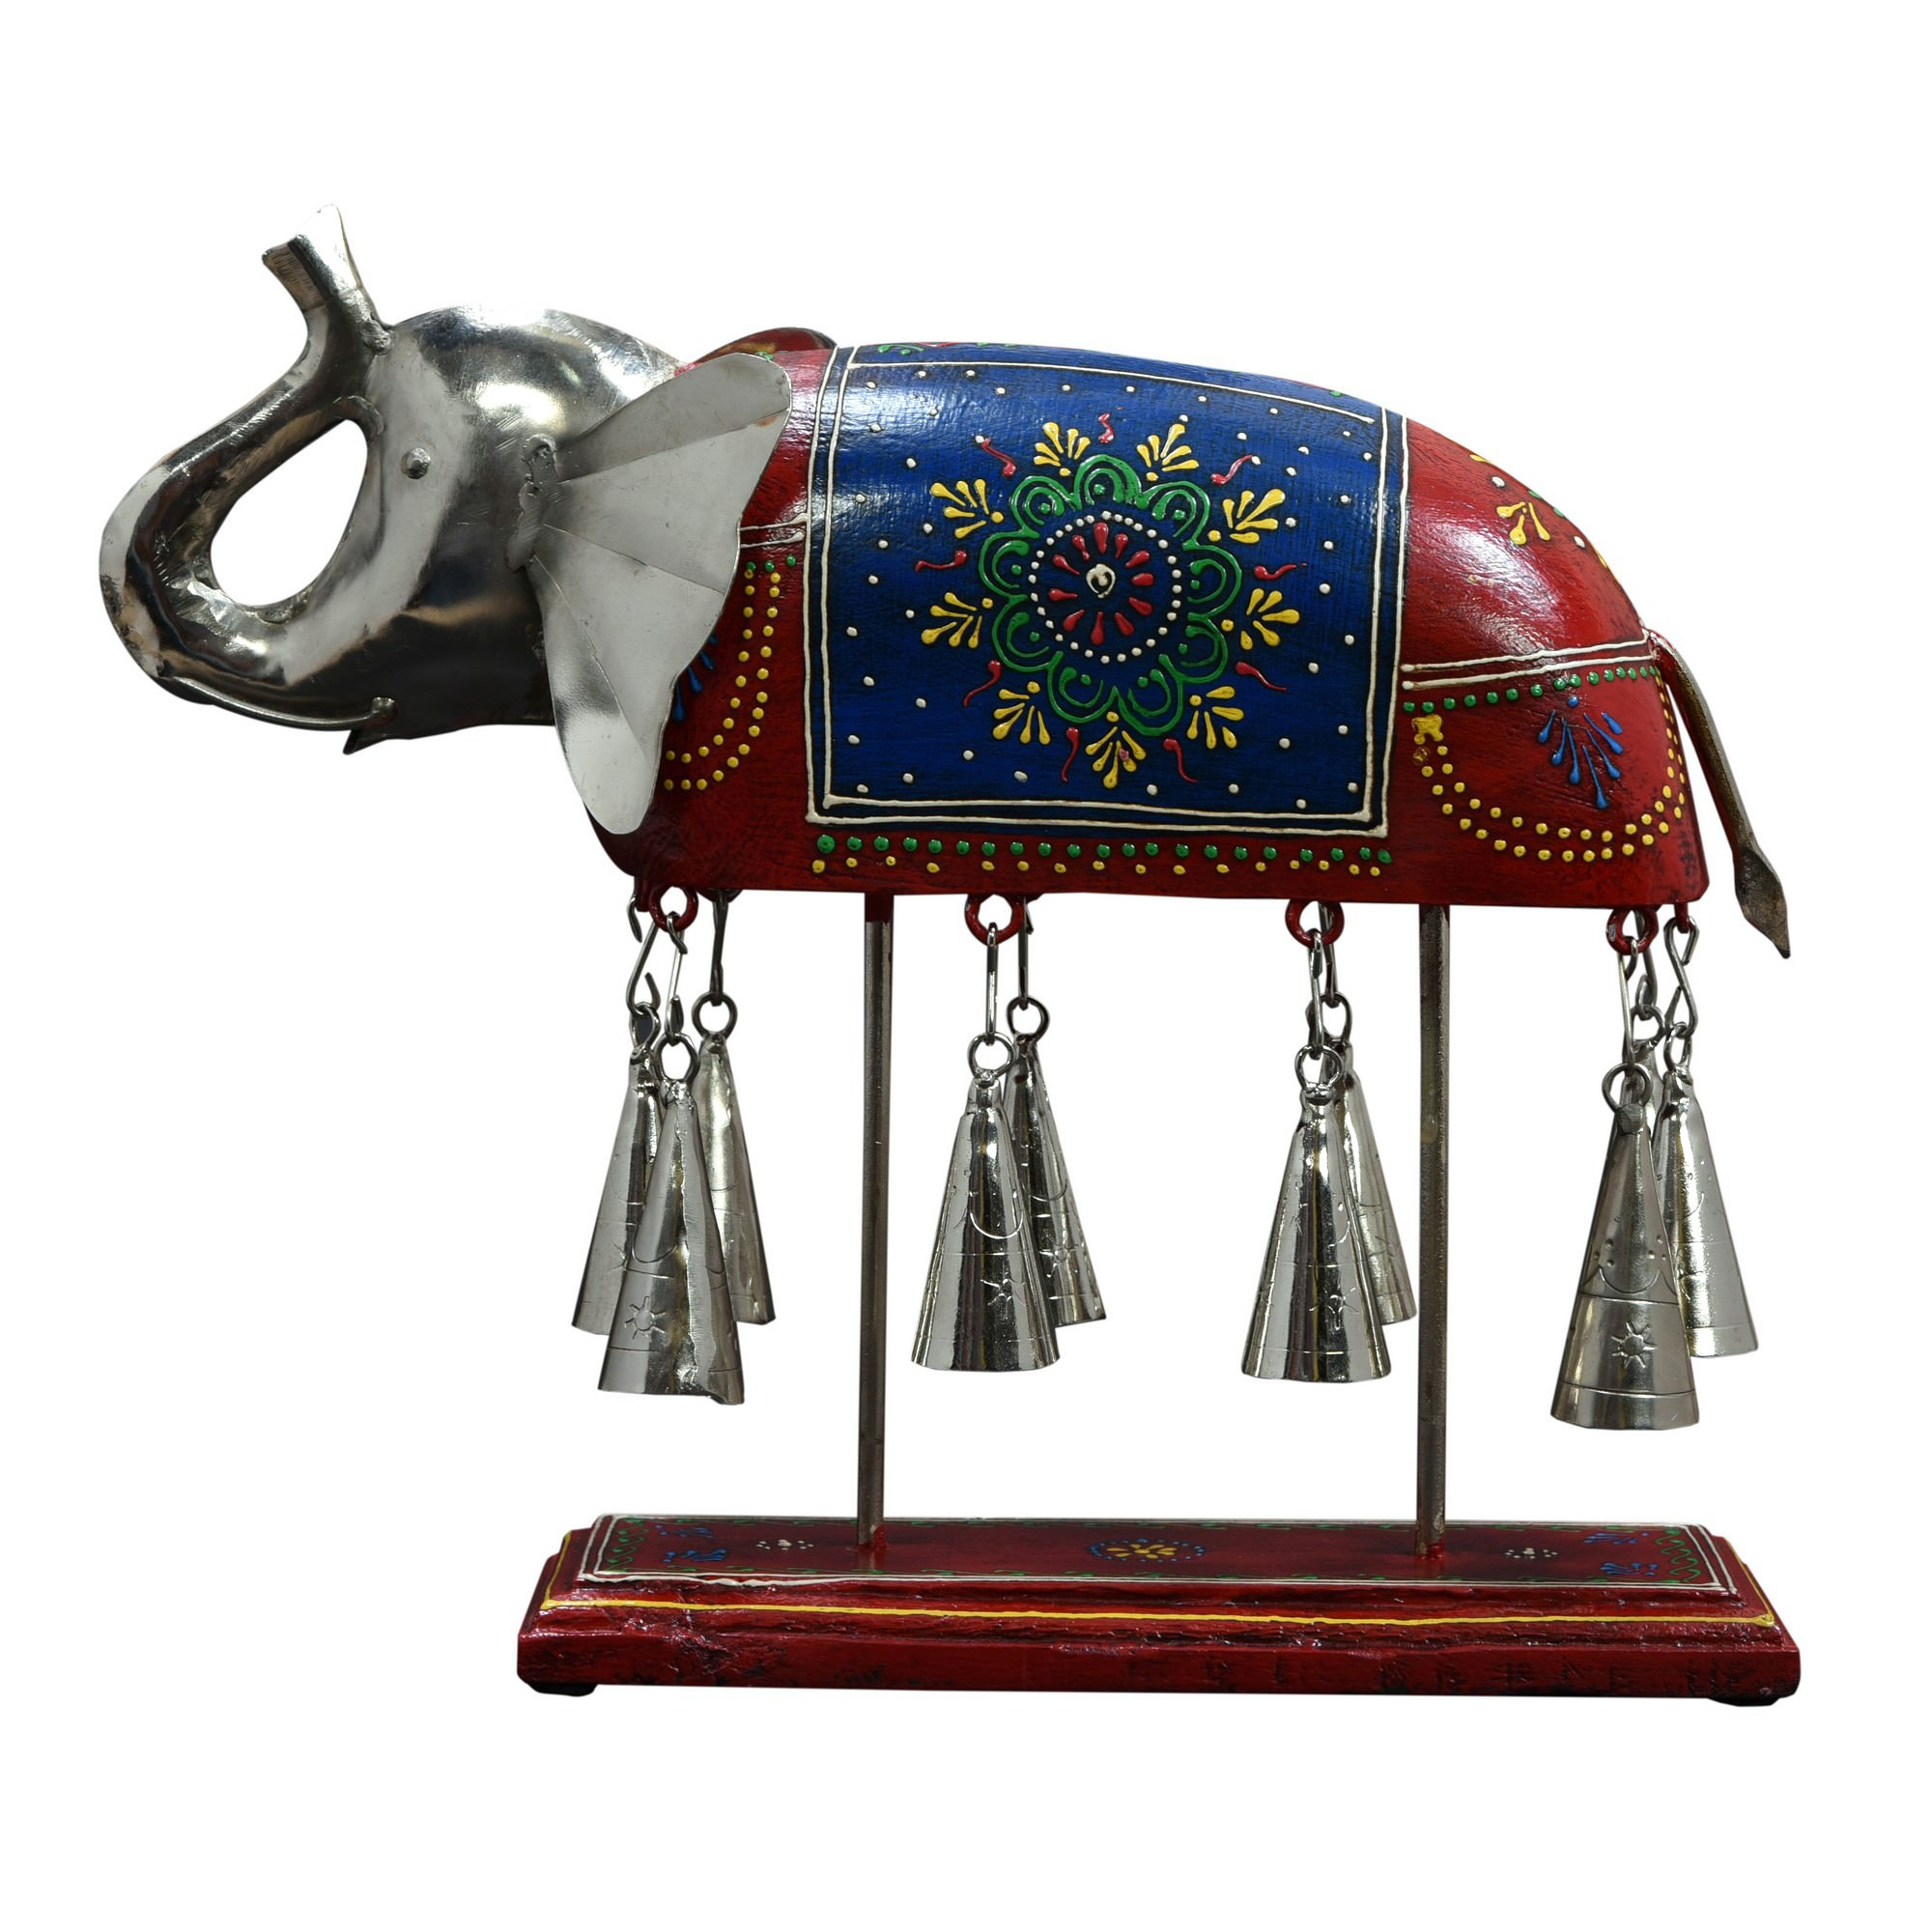 Qurrich Metal & Hand Painted Timber Elephant Table Chime